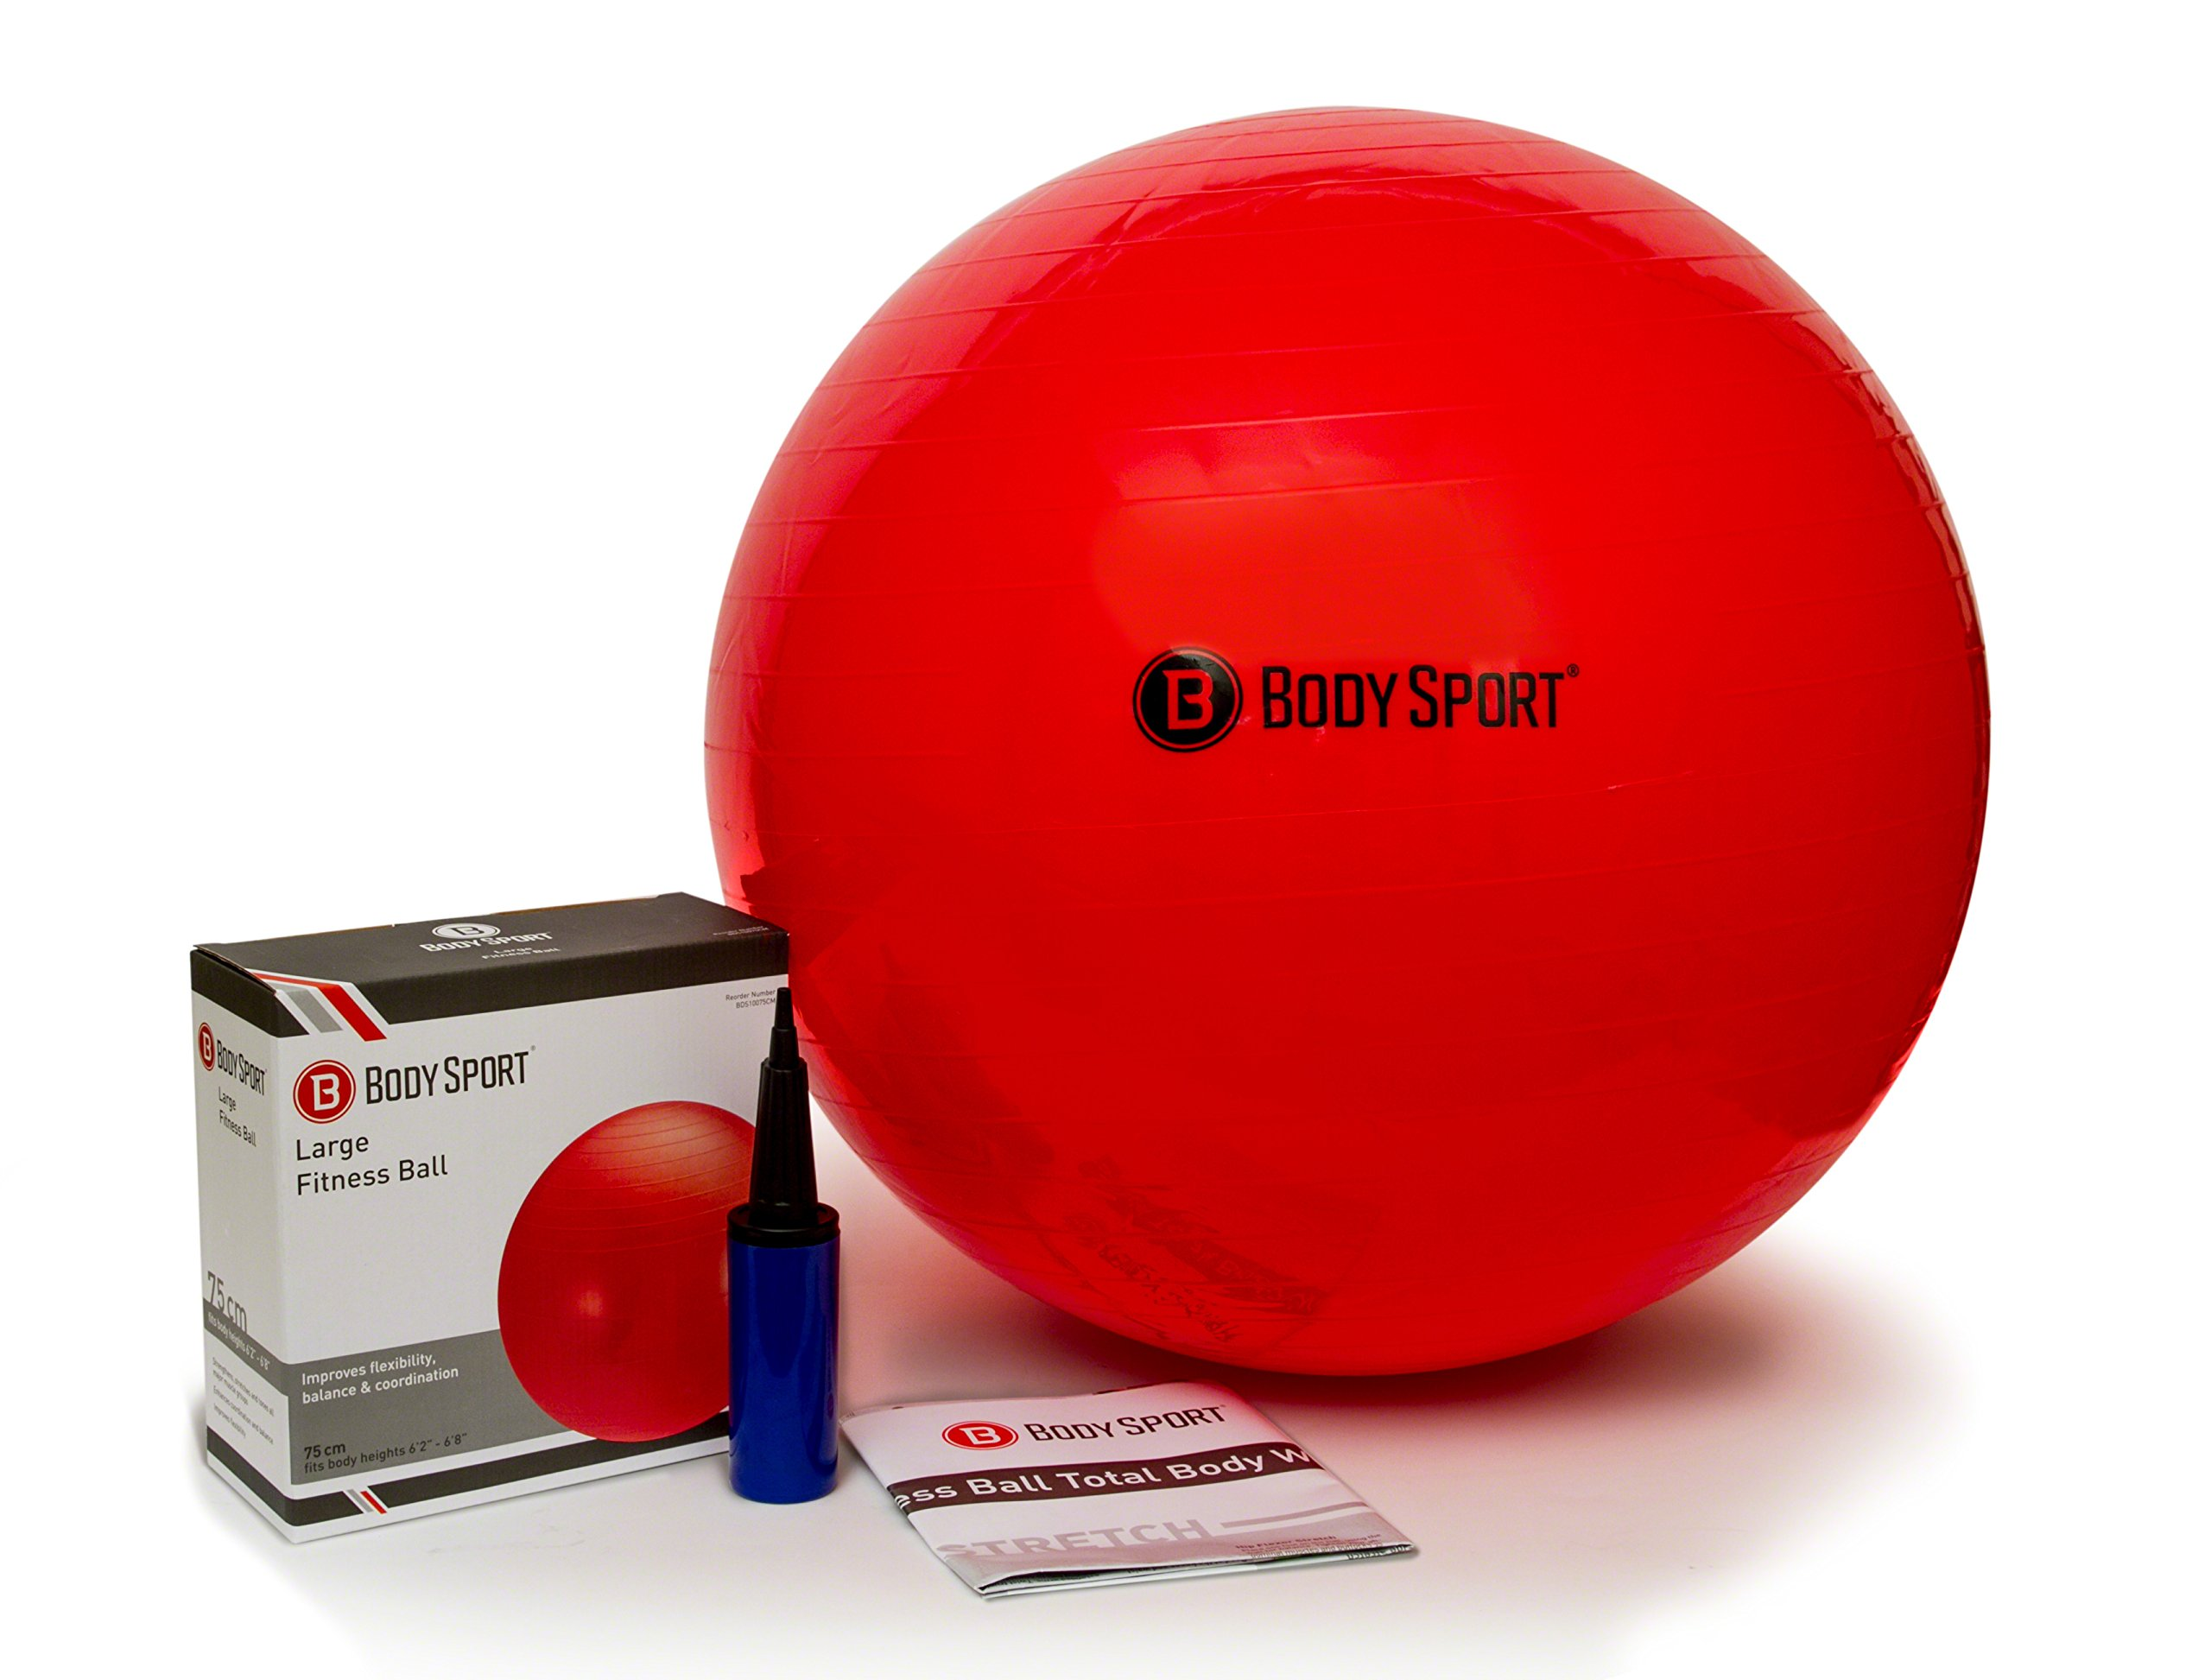 Body Sport Exercise Ball with Pump for Home, Gym, Balance, Stability, Pilates, Core Strength, Stretching, Yoga, Fitness Facilities, Desk Chairs - Red 75cm by Body Sport (Image #1)